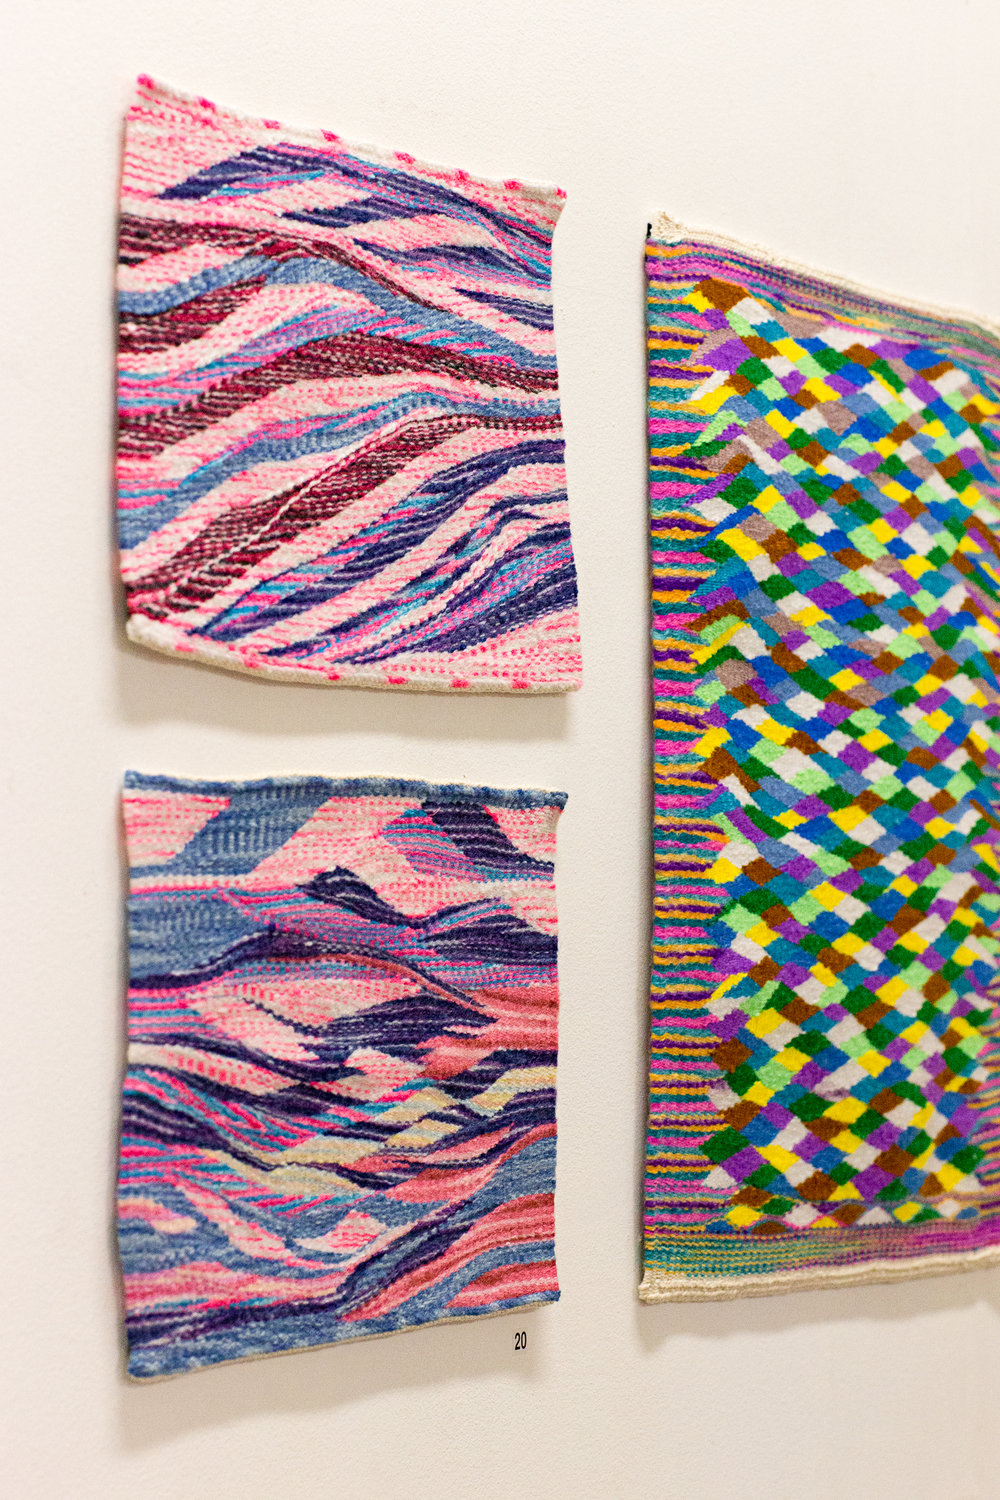 Munaw Poe and Shuklay Tahpo, hand-woven tapestries, installation view,  Handle With Care,  2018, Soul Craft Festival, Melbourne. Photo courtesy Soul Craft Festival.